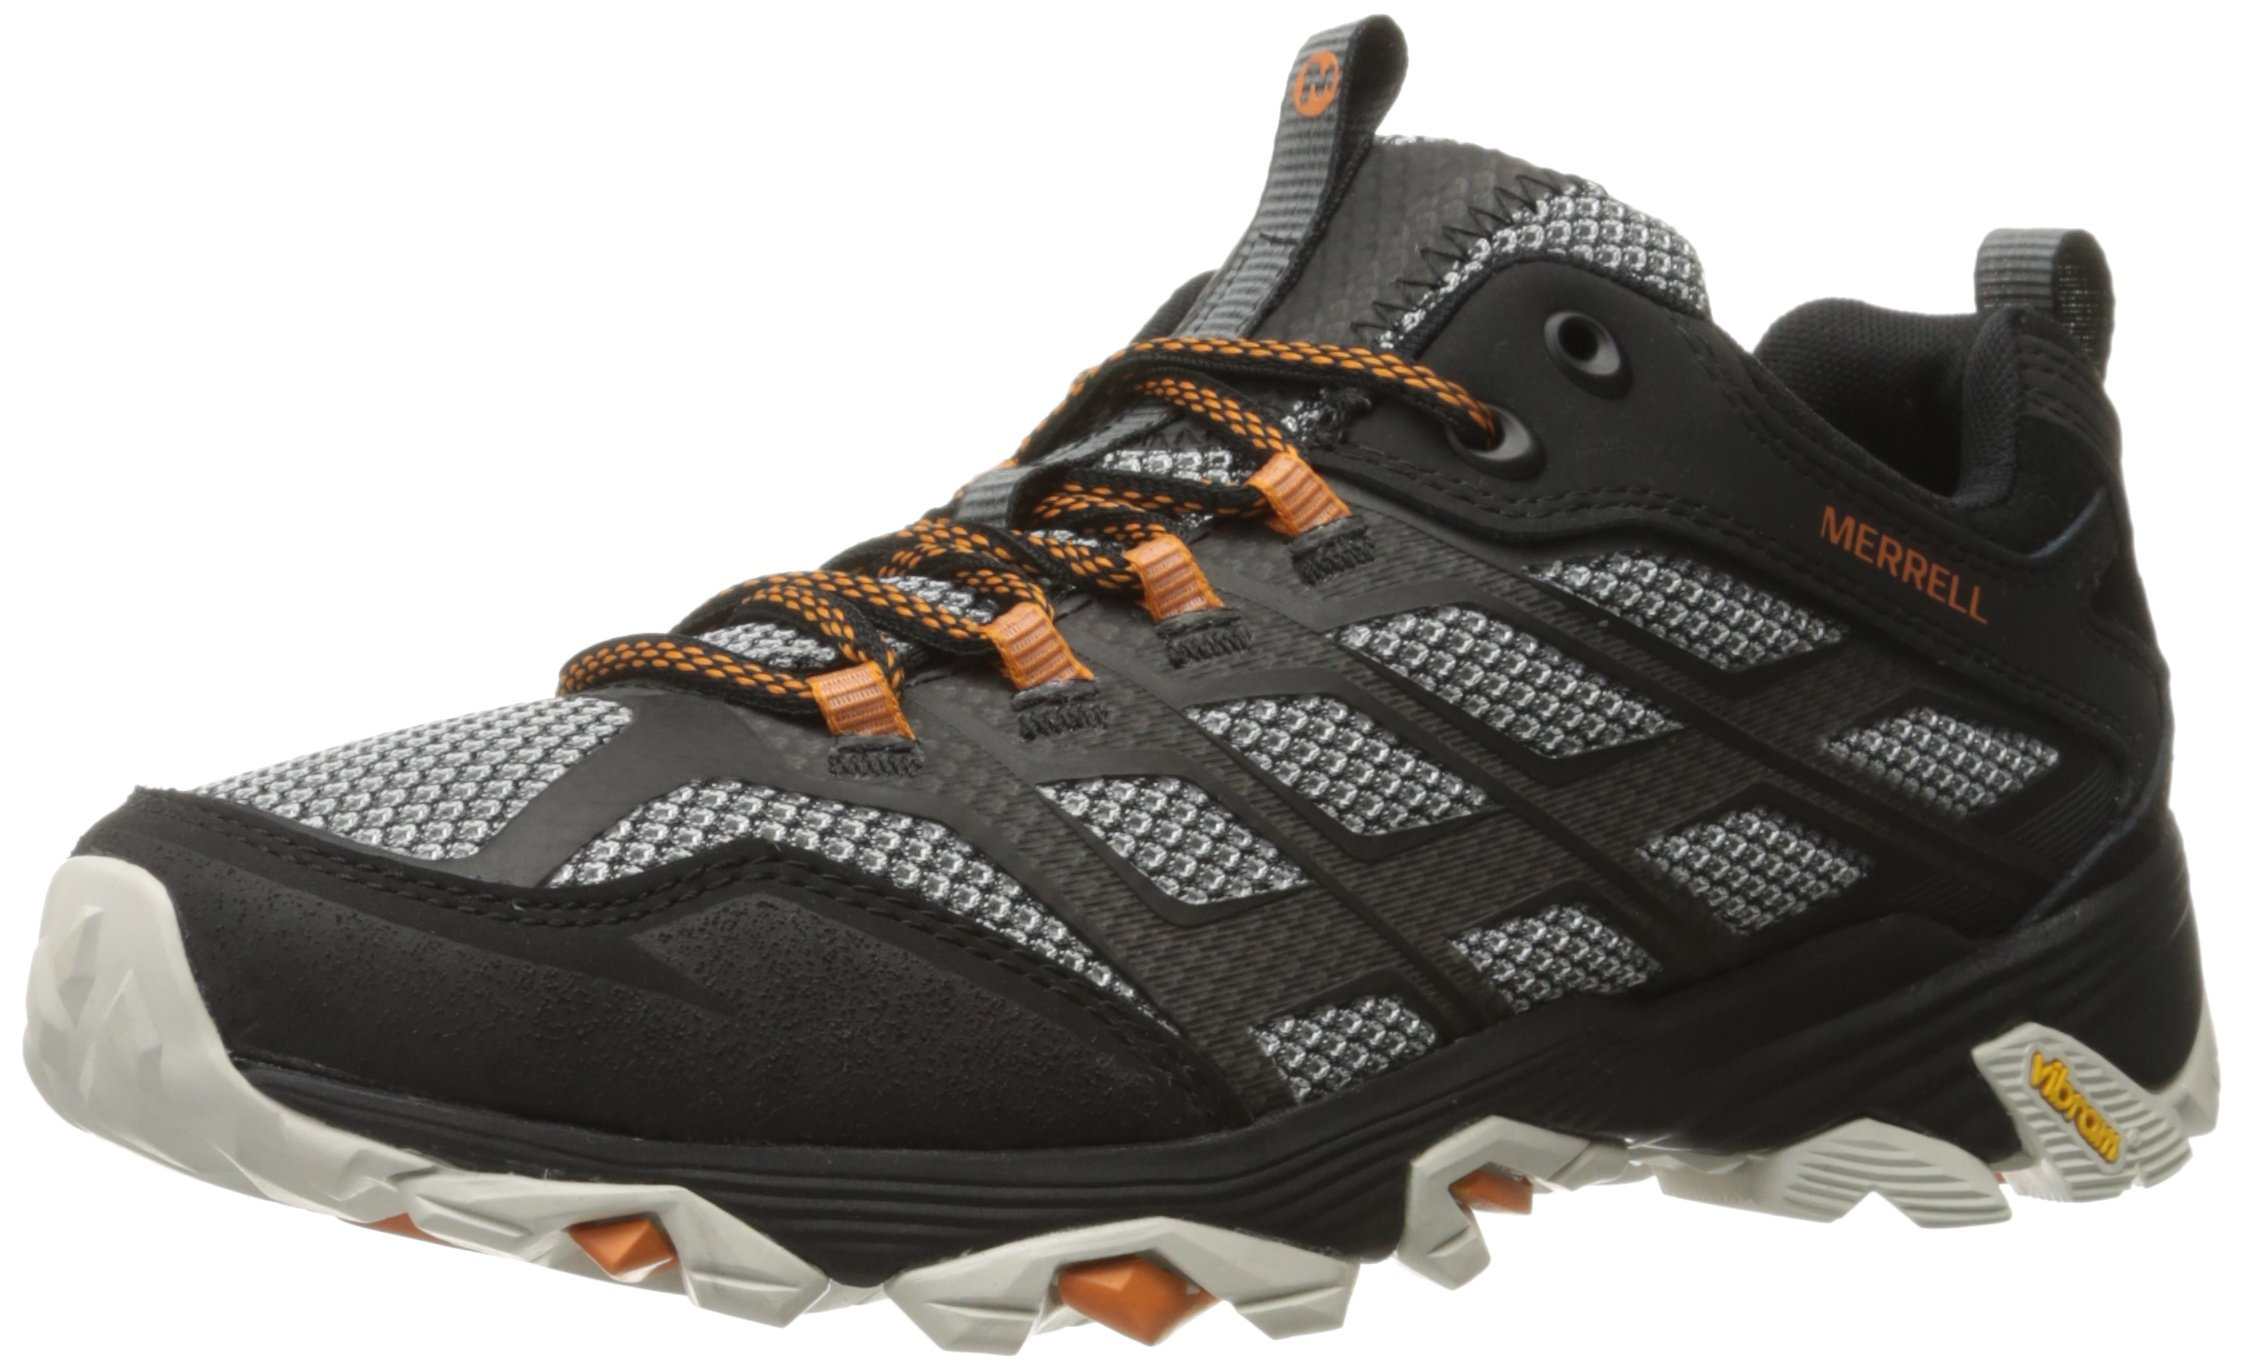 Merrell Men's Moab FST Hiking Shoe, Black, 10.5 M US by Merrell